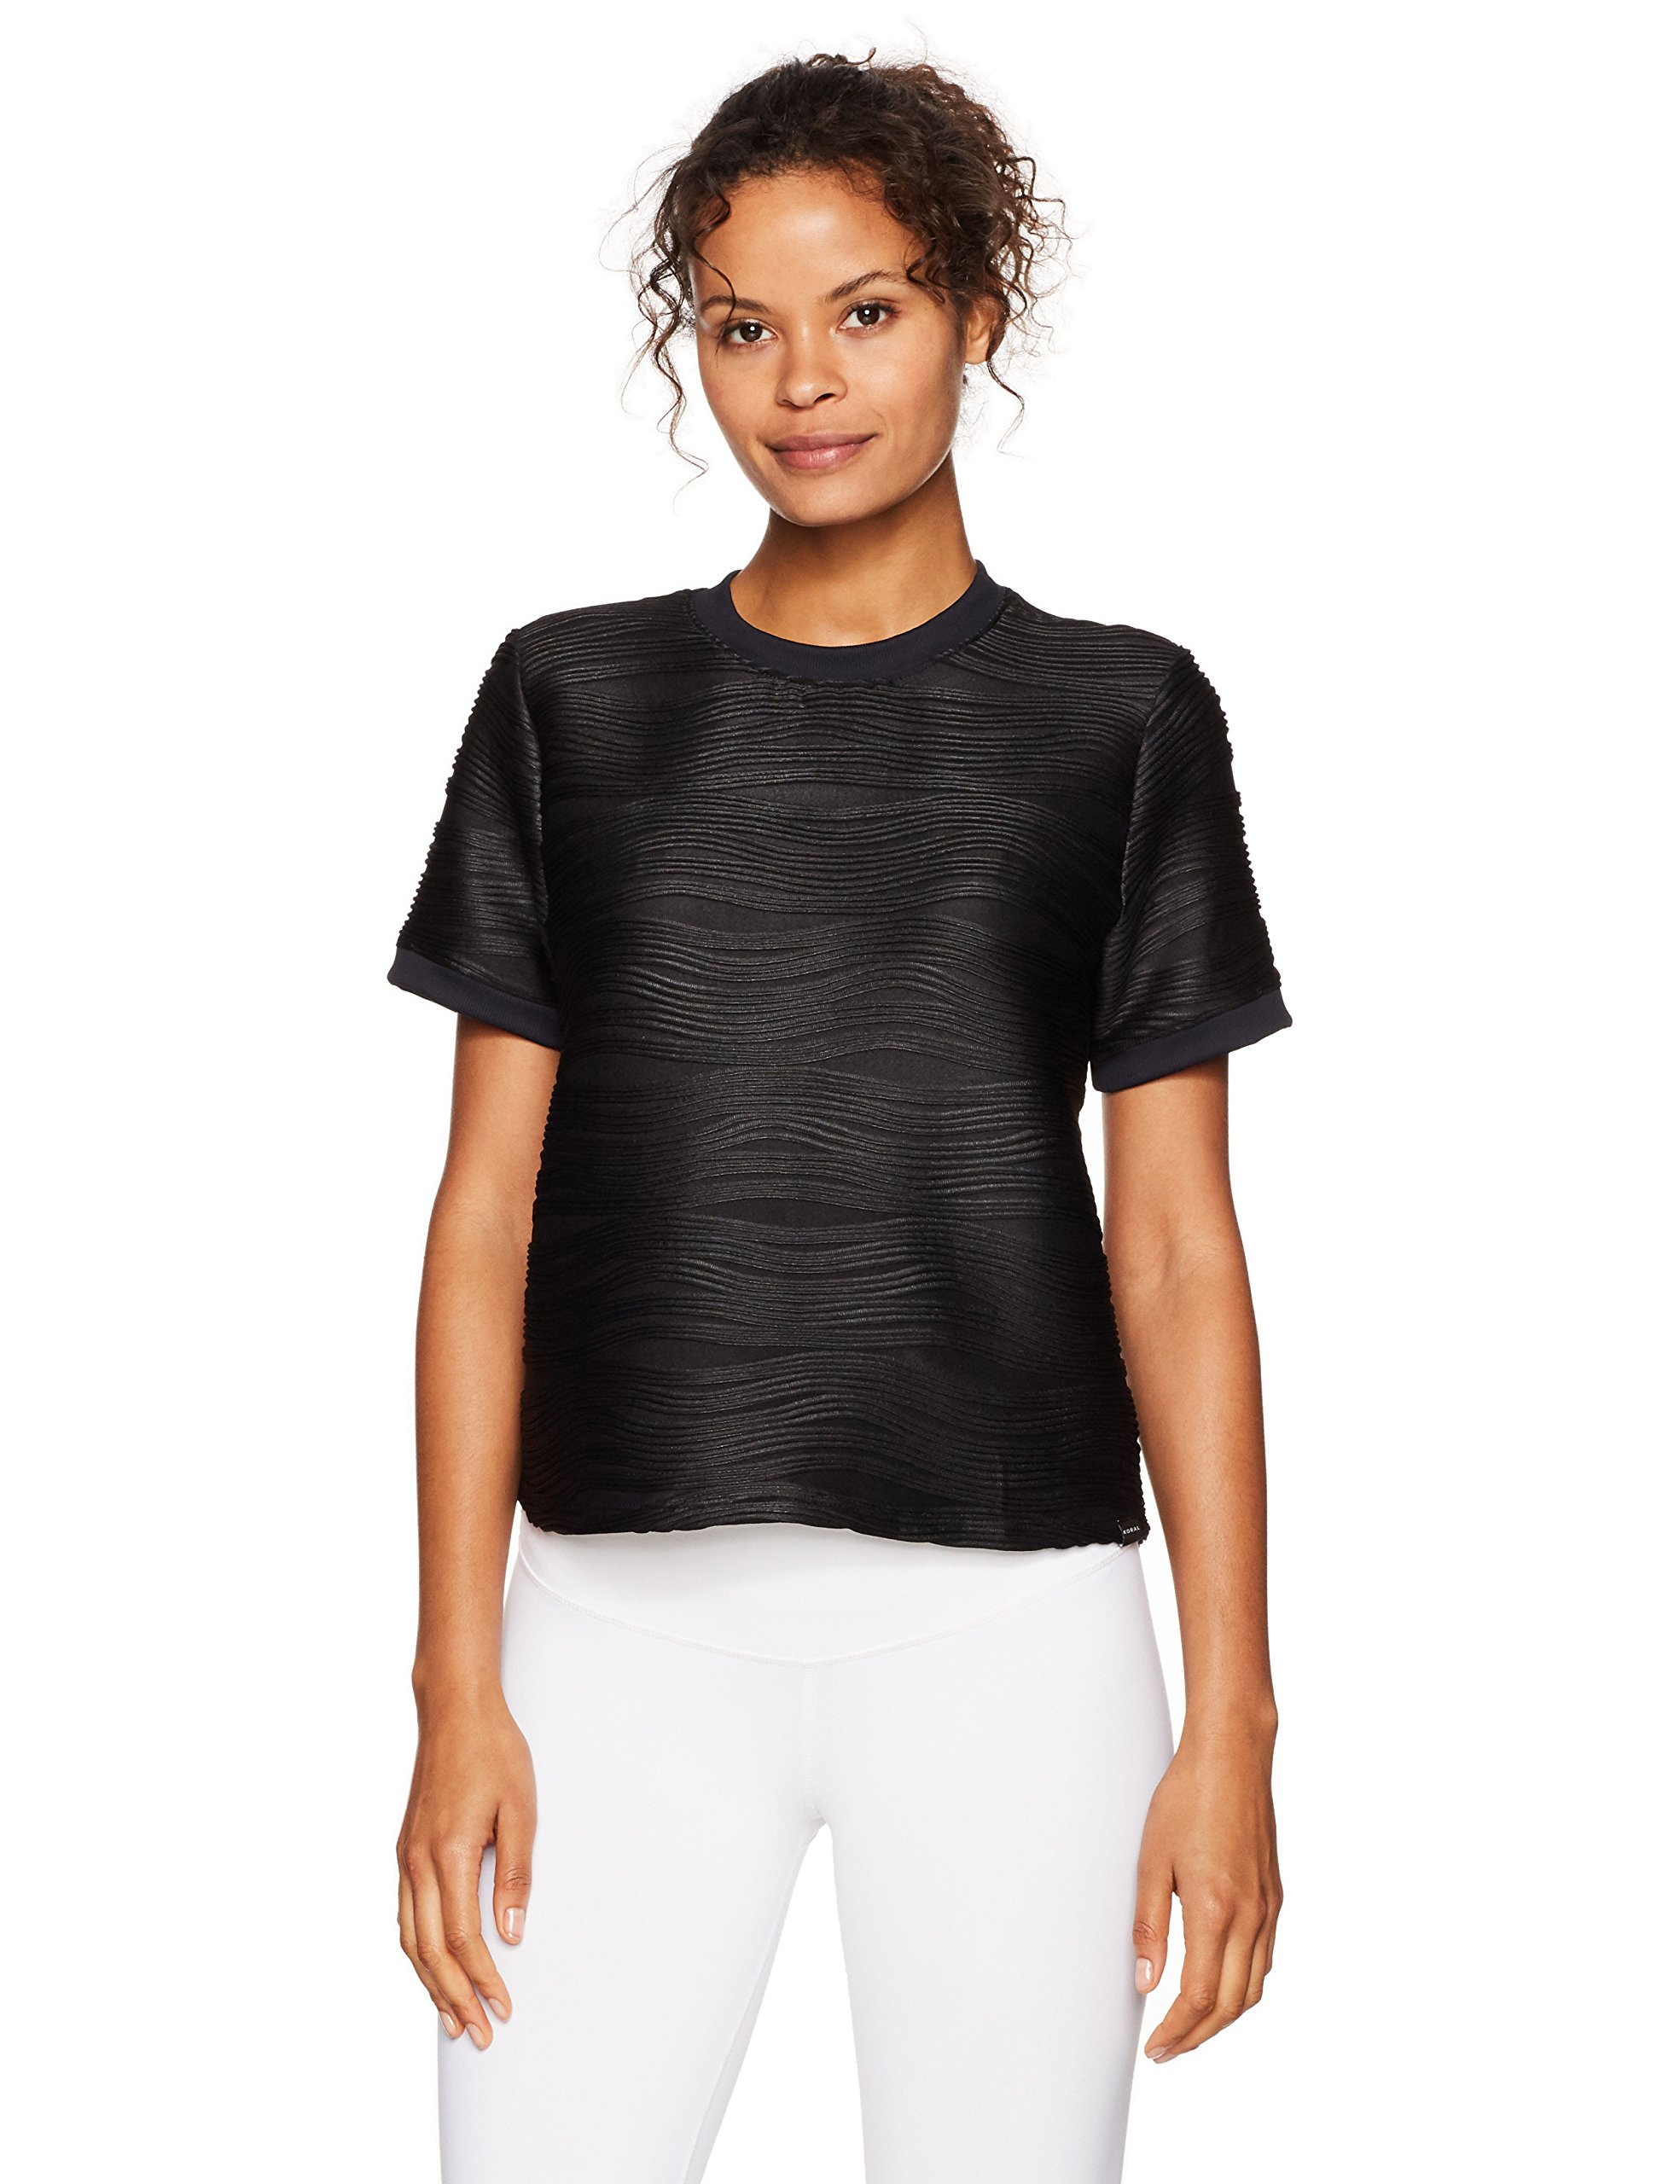 KORAL Women's Redeem Top, Black, S by Koral (Image #1)